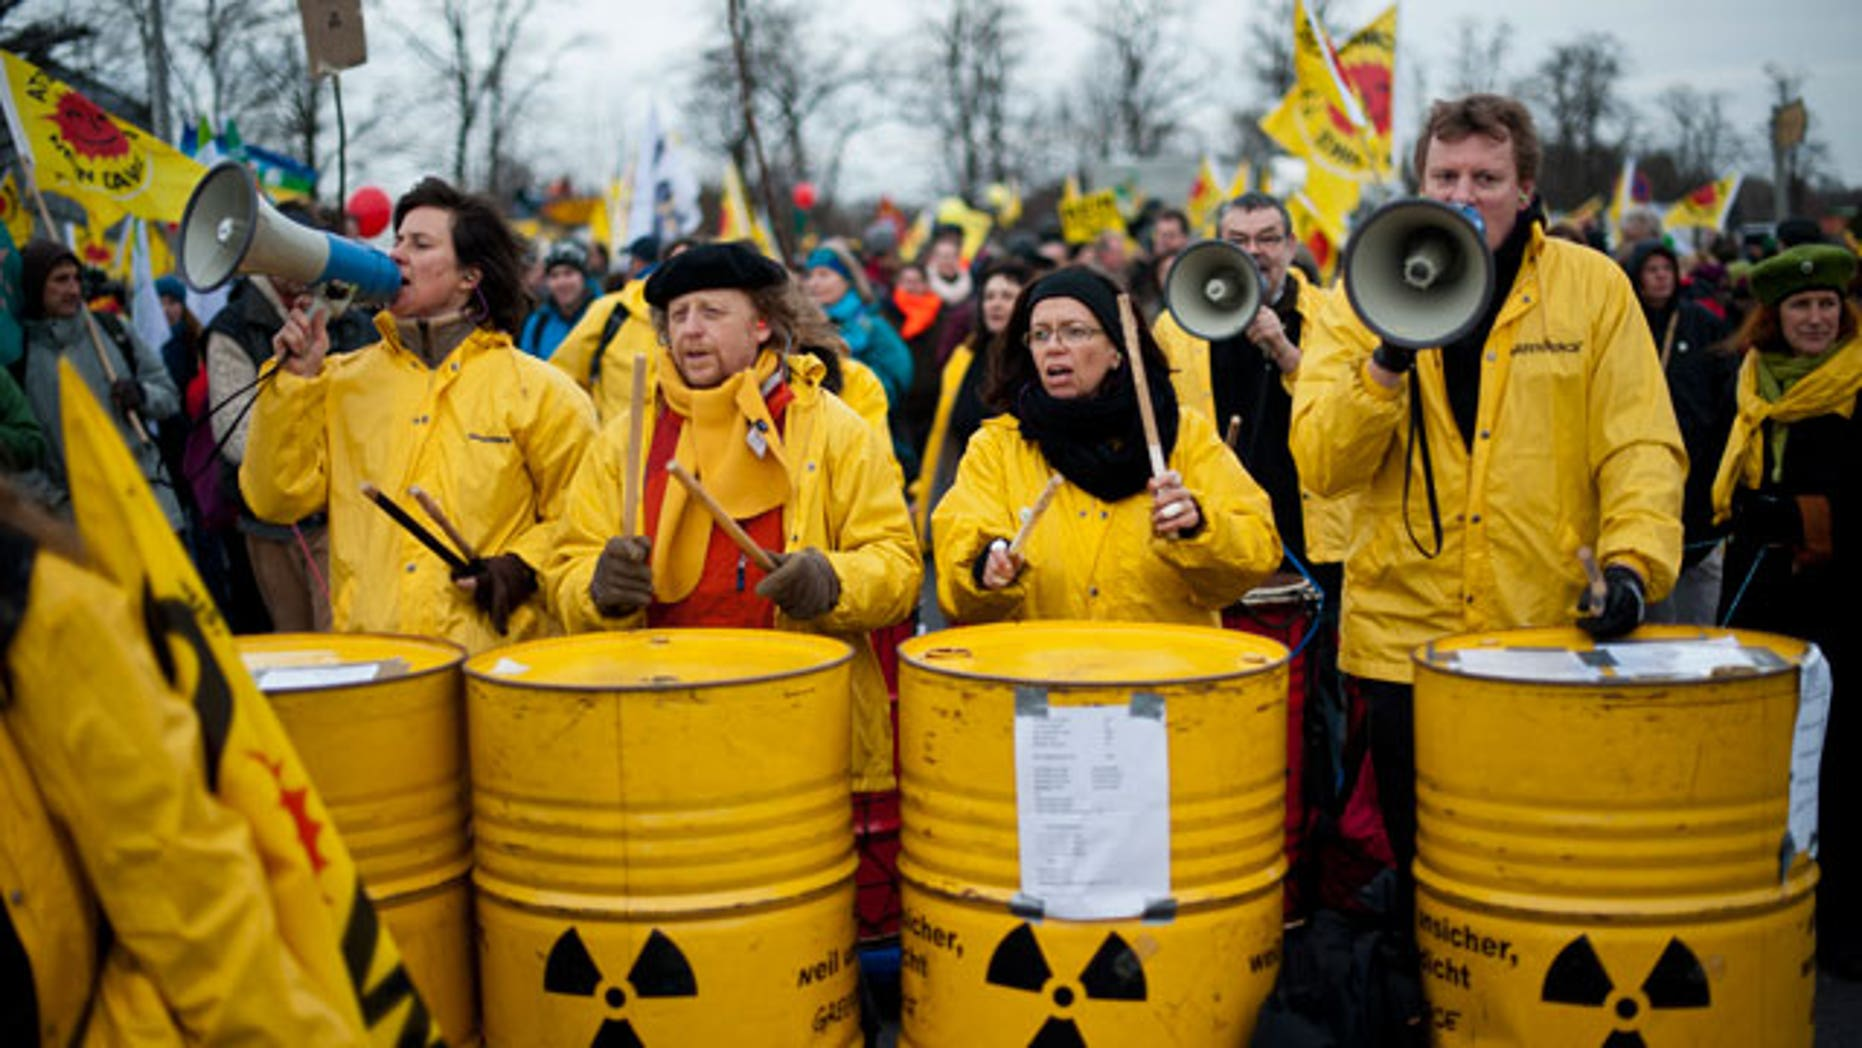 Nov. 26, 2011: Demonstrators drum on barrels with a nuclear sign, during protests against a nuclear waste transport in Dannenberg, northern Germany.